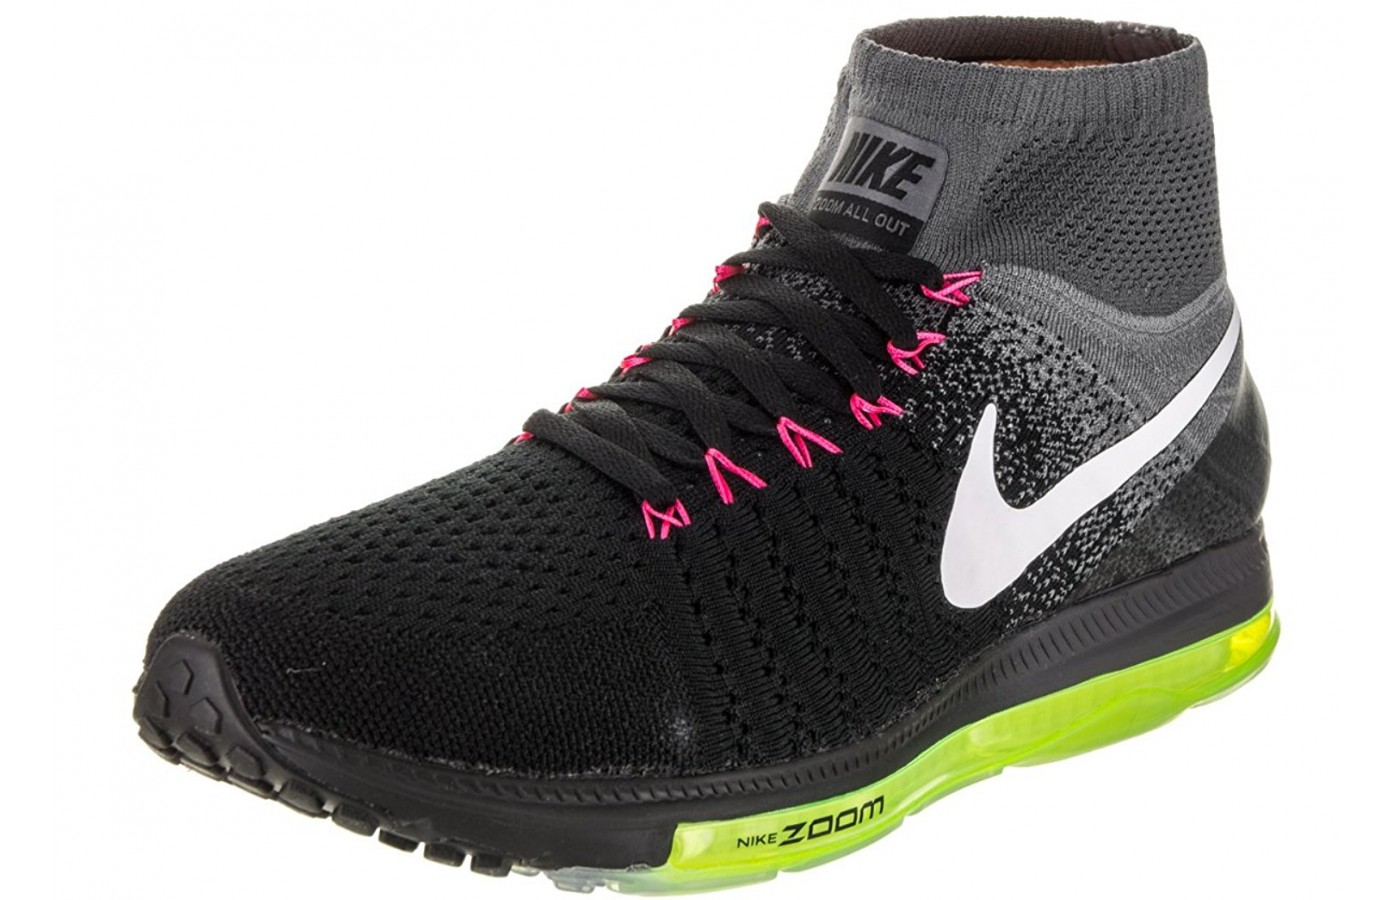 159a27a8cae1 Nike Air Zoom All Out Flyknit Reviewed and Tested - WalkJogRun